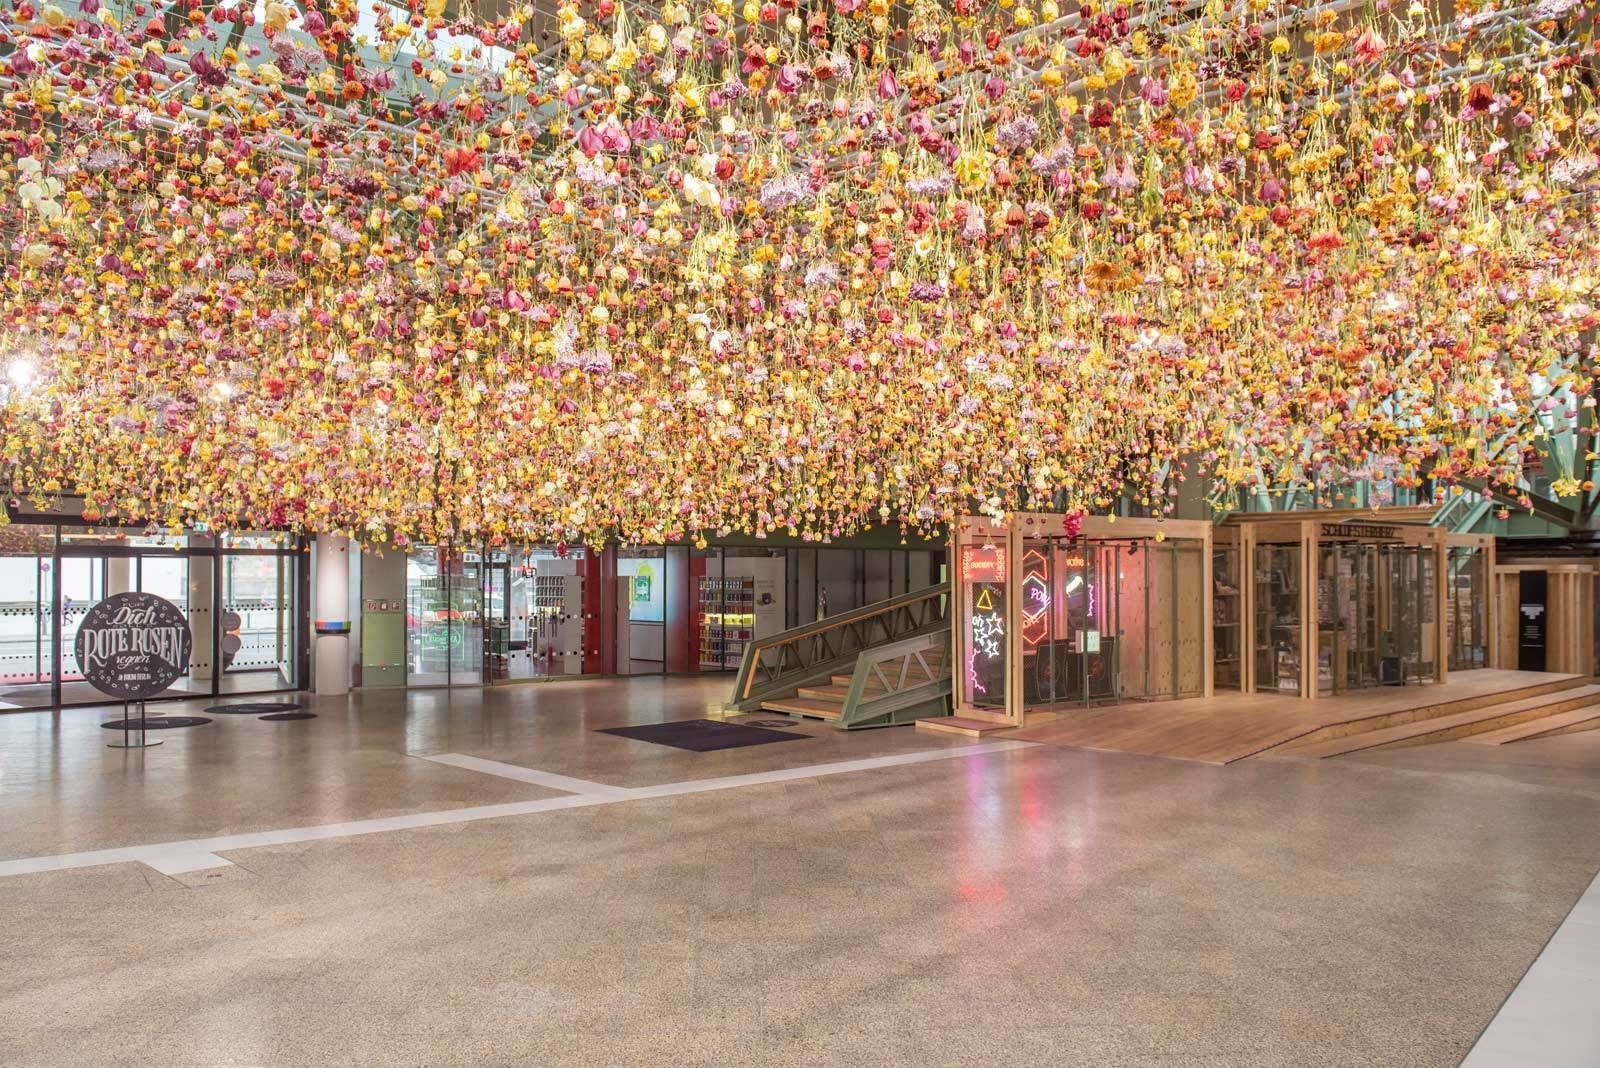 30,000 suspended, real flowers make for a one-of-a-kind deconstructed garden in this transient art installation